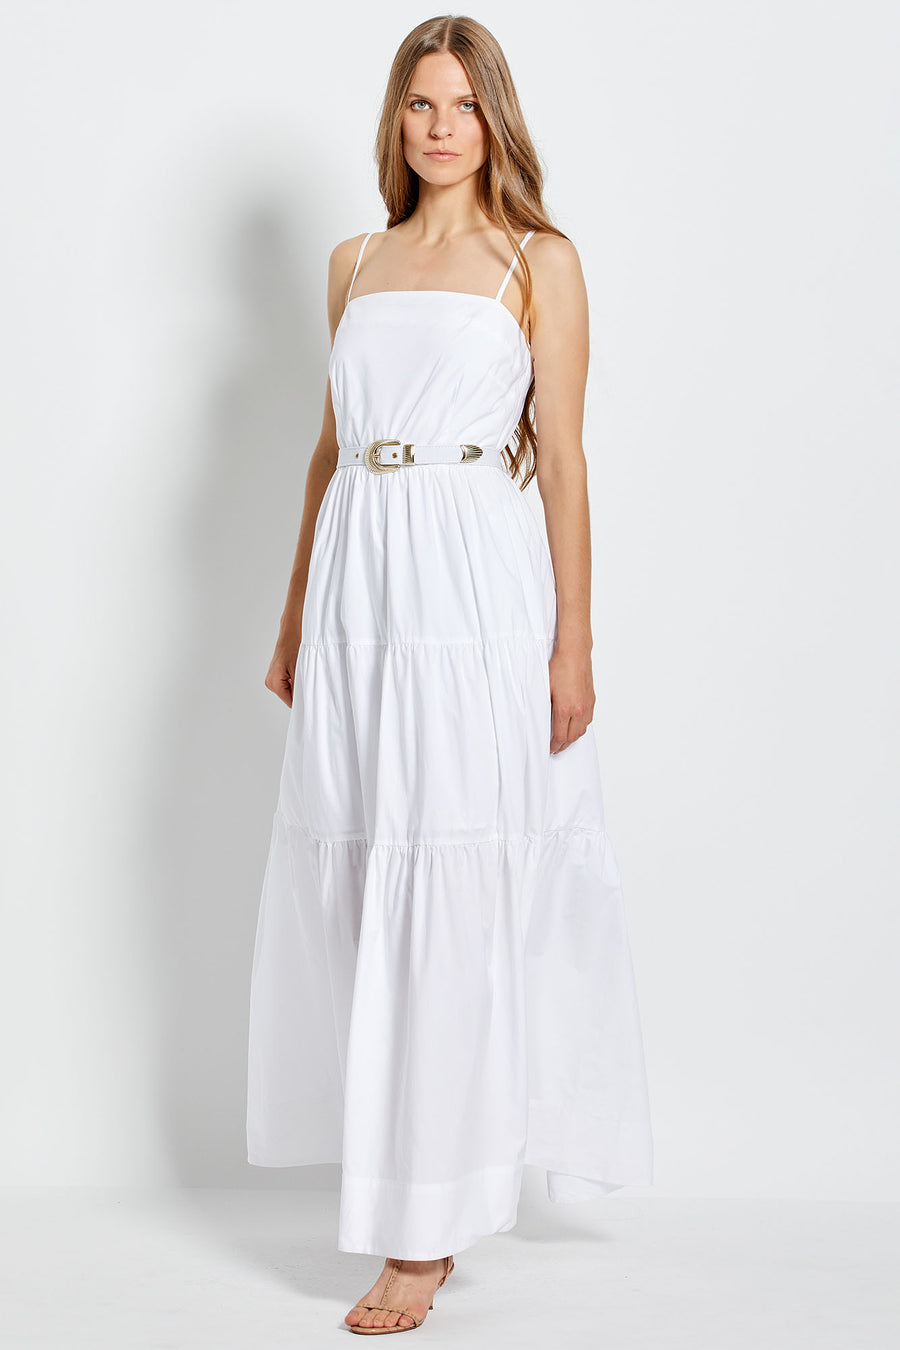 Kerala Dress - White